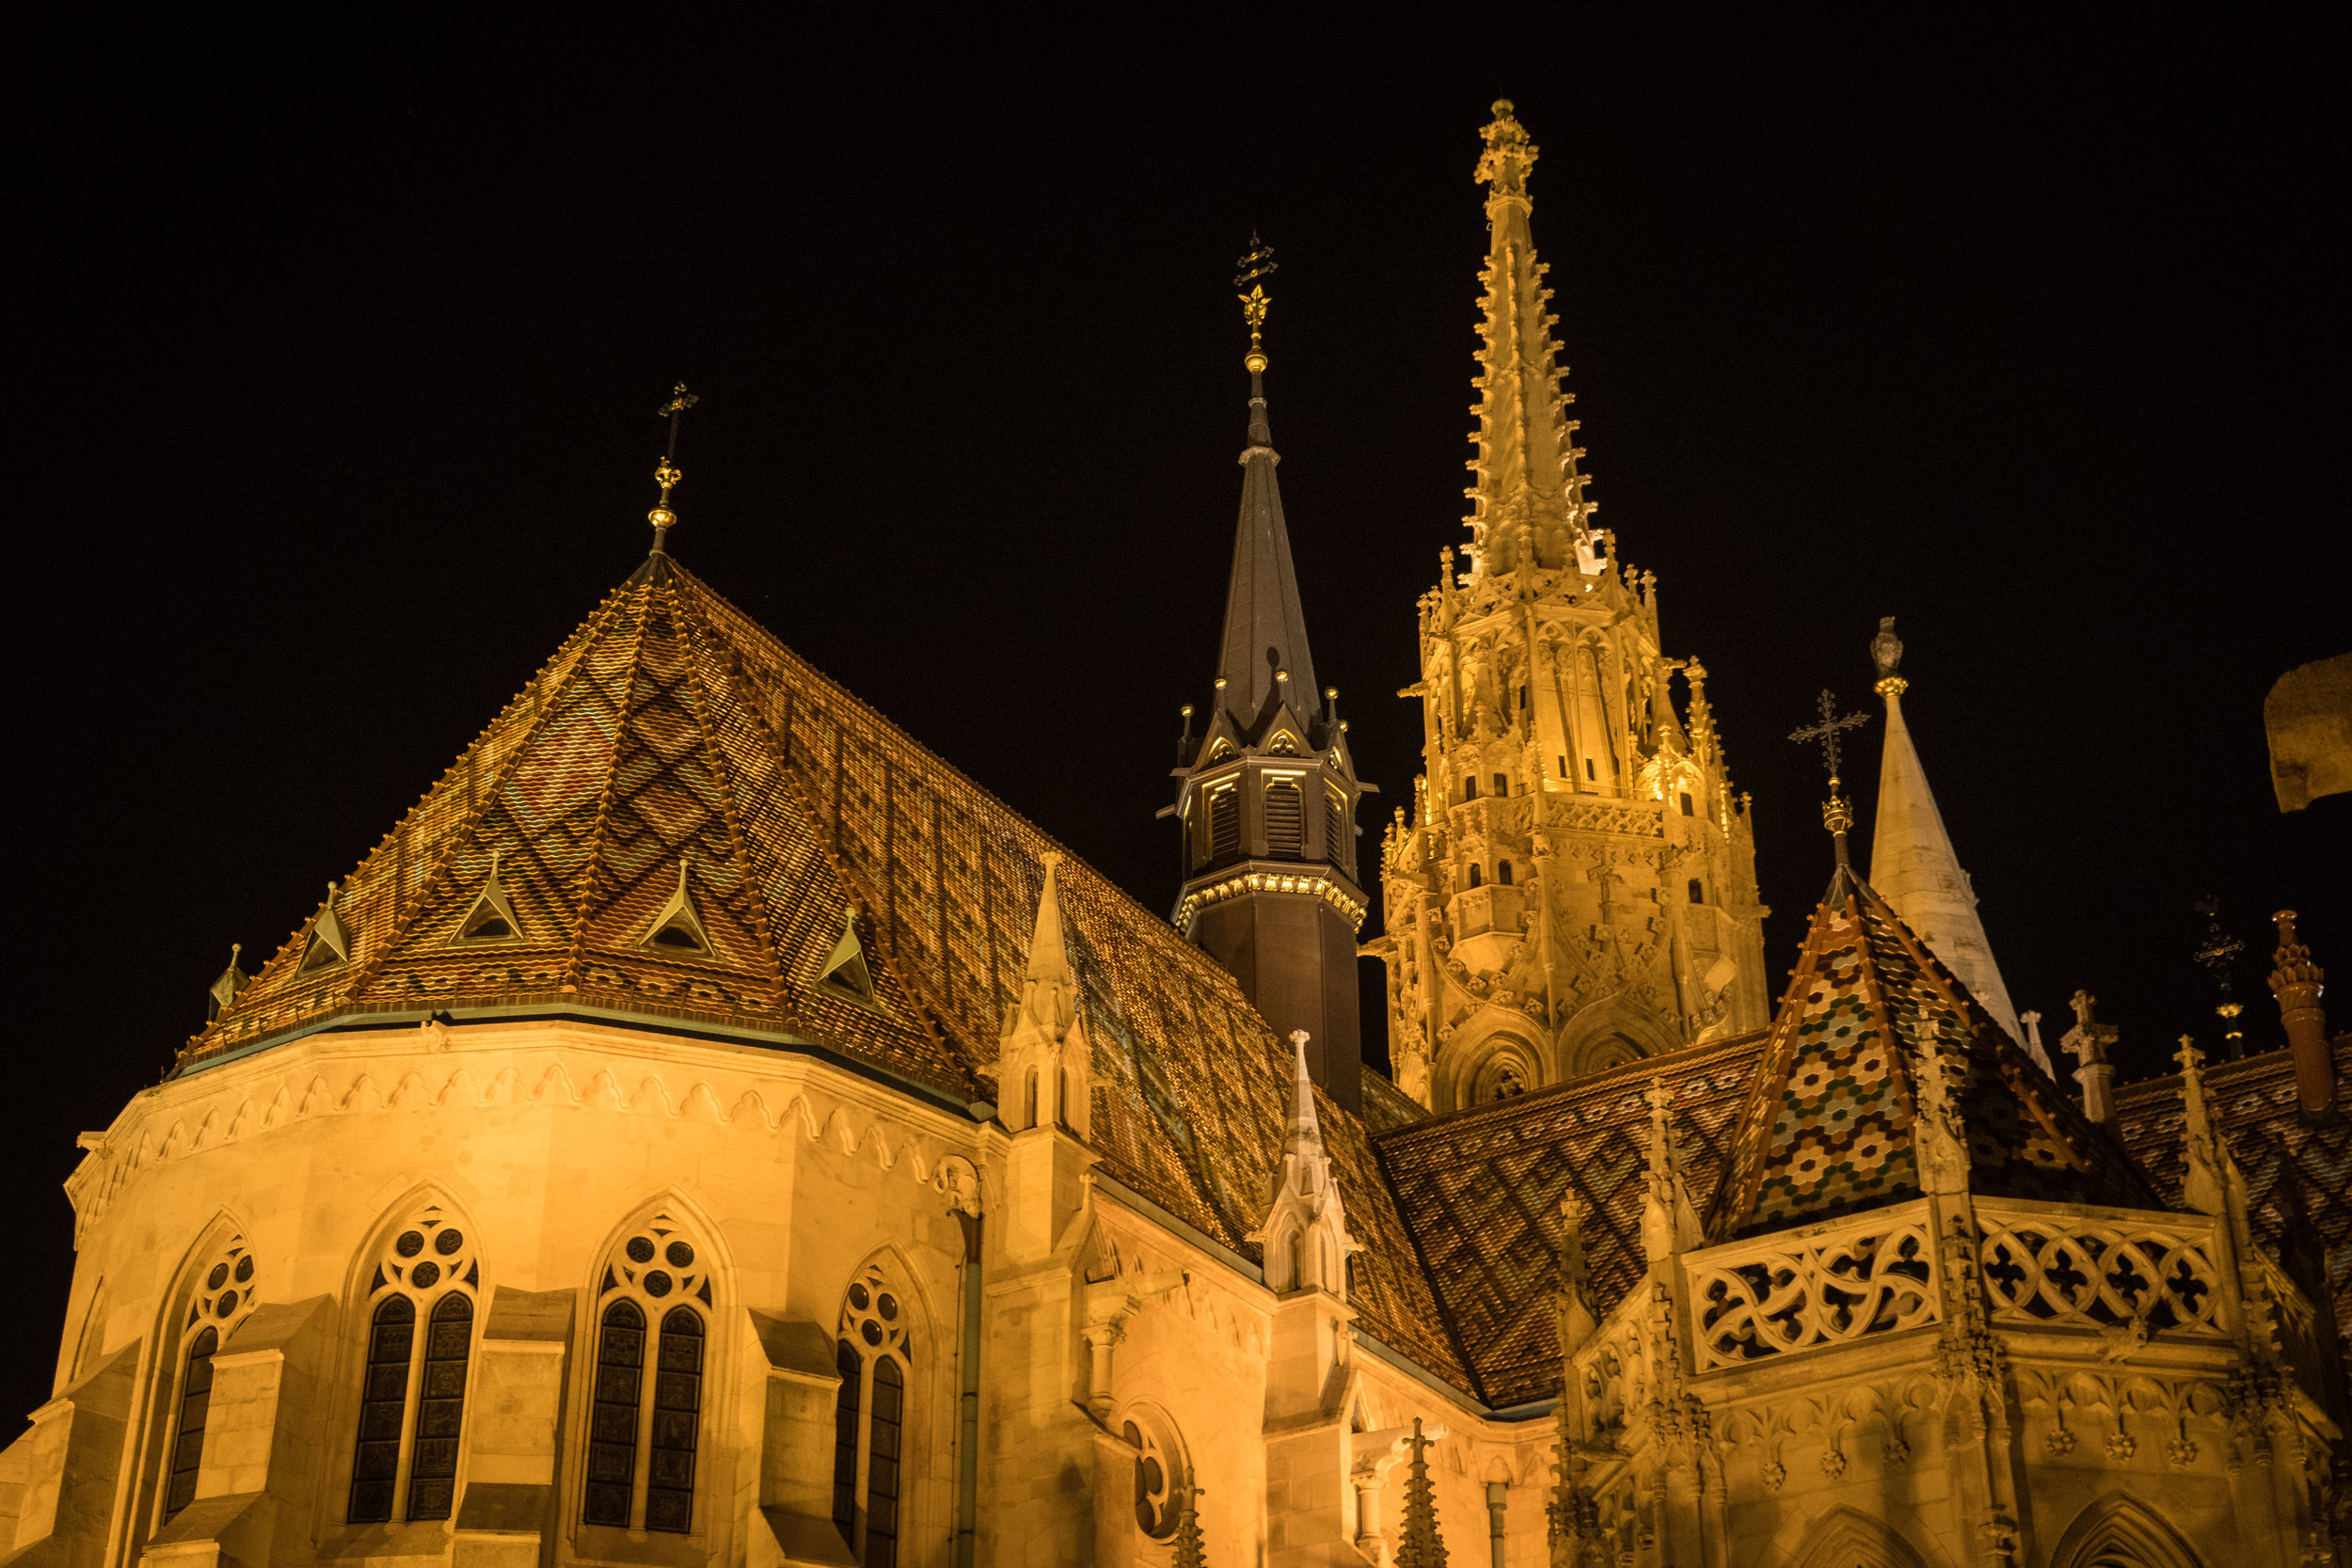 the beautiful tile roof of St. Matthias Church